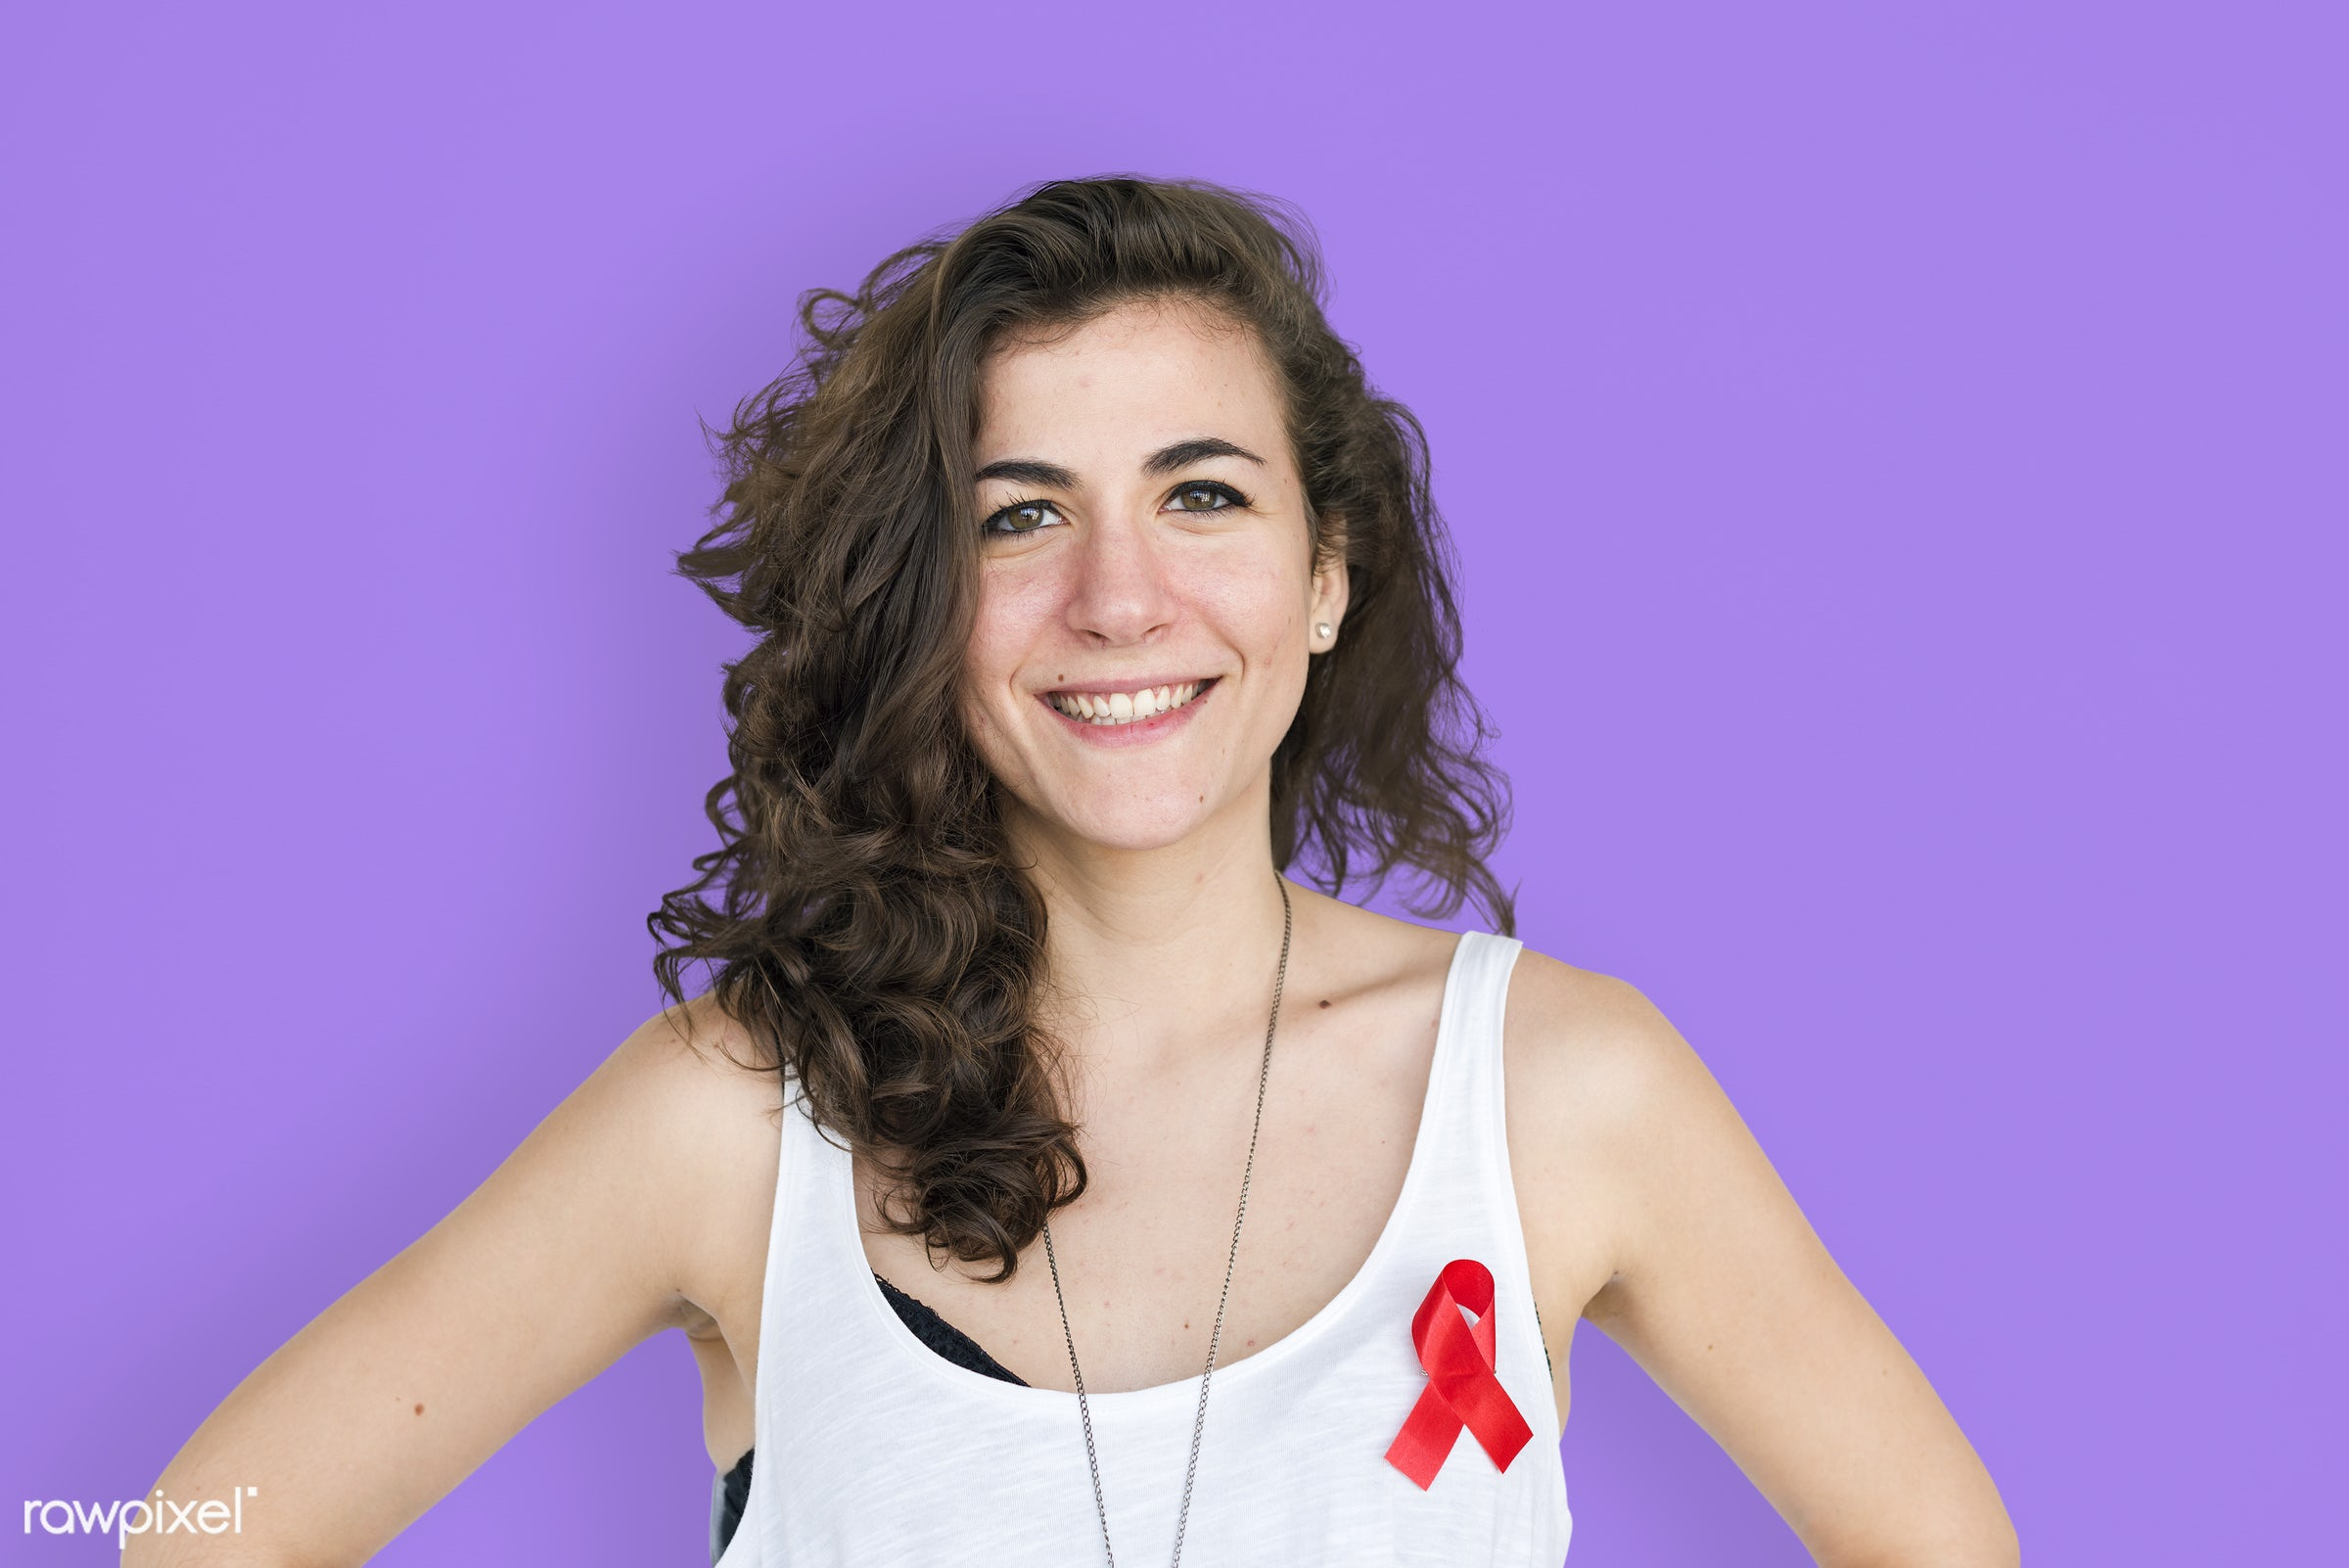 studio, expression, person, red ribbon, charity, people, hiv, solo, woman, ribbon, smile, cheerful, smiling, isolated, drugs...